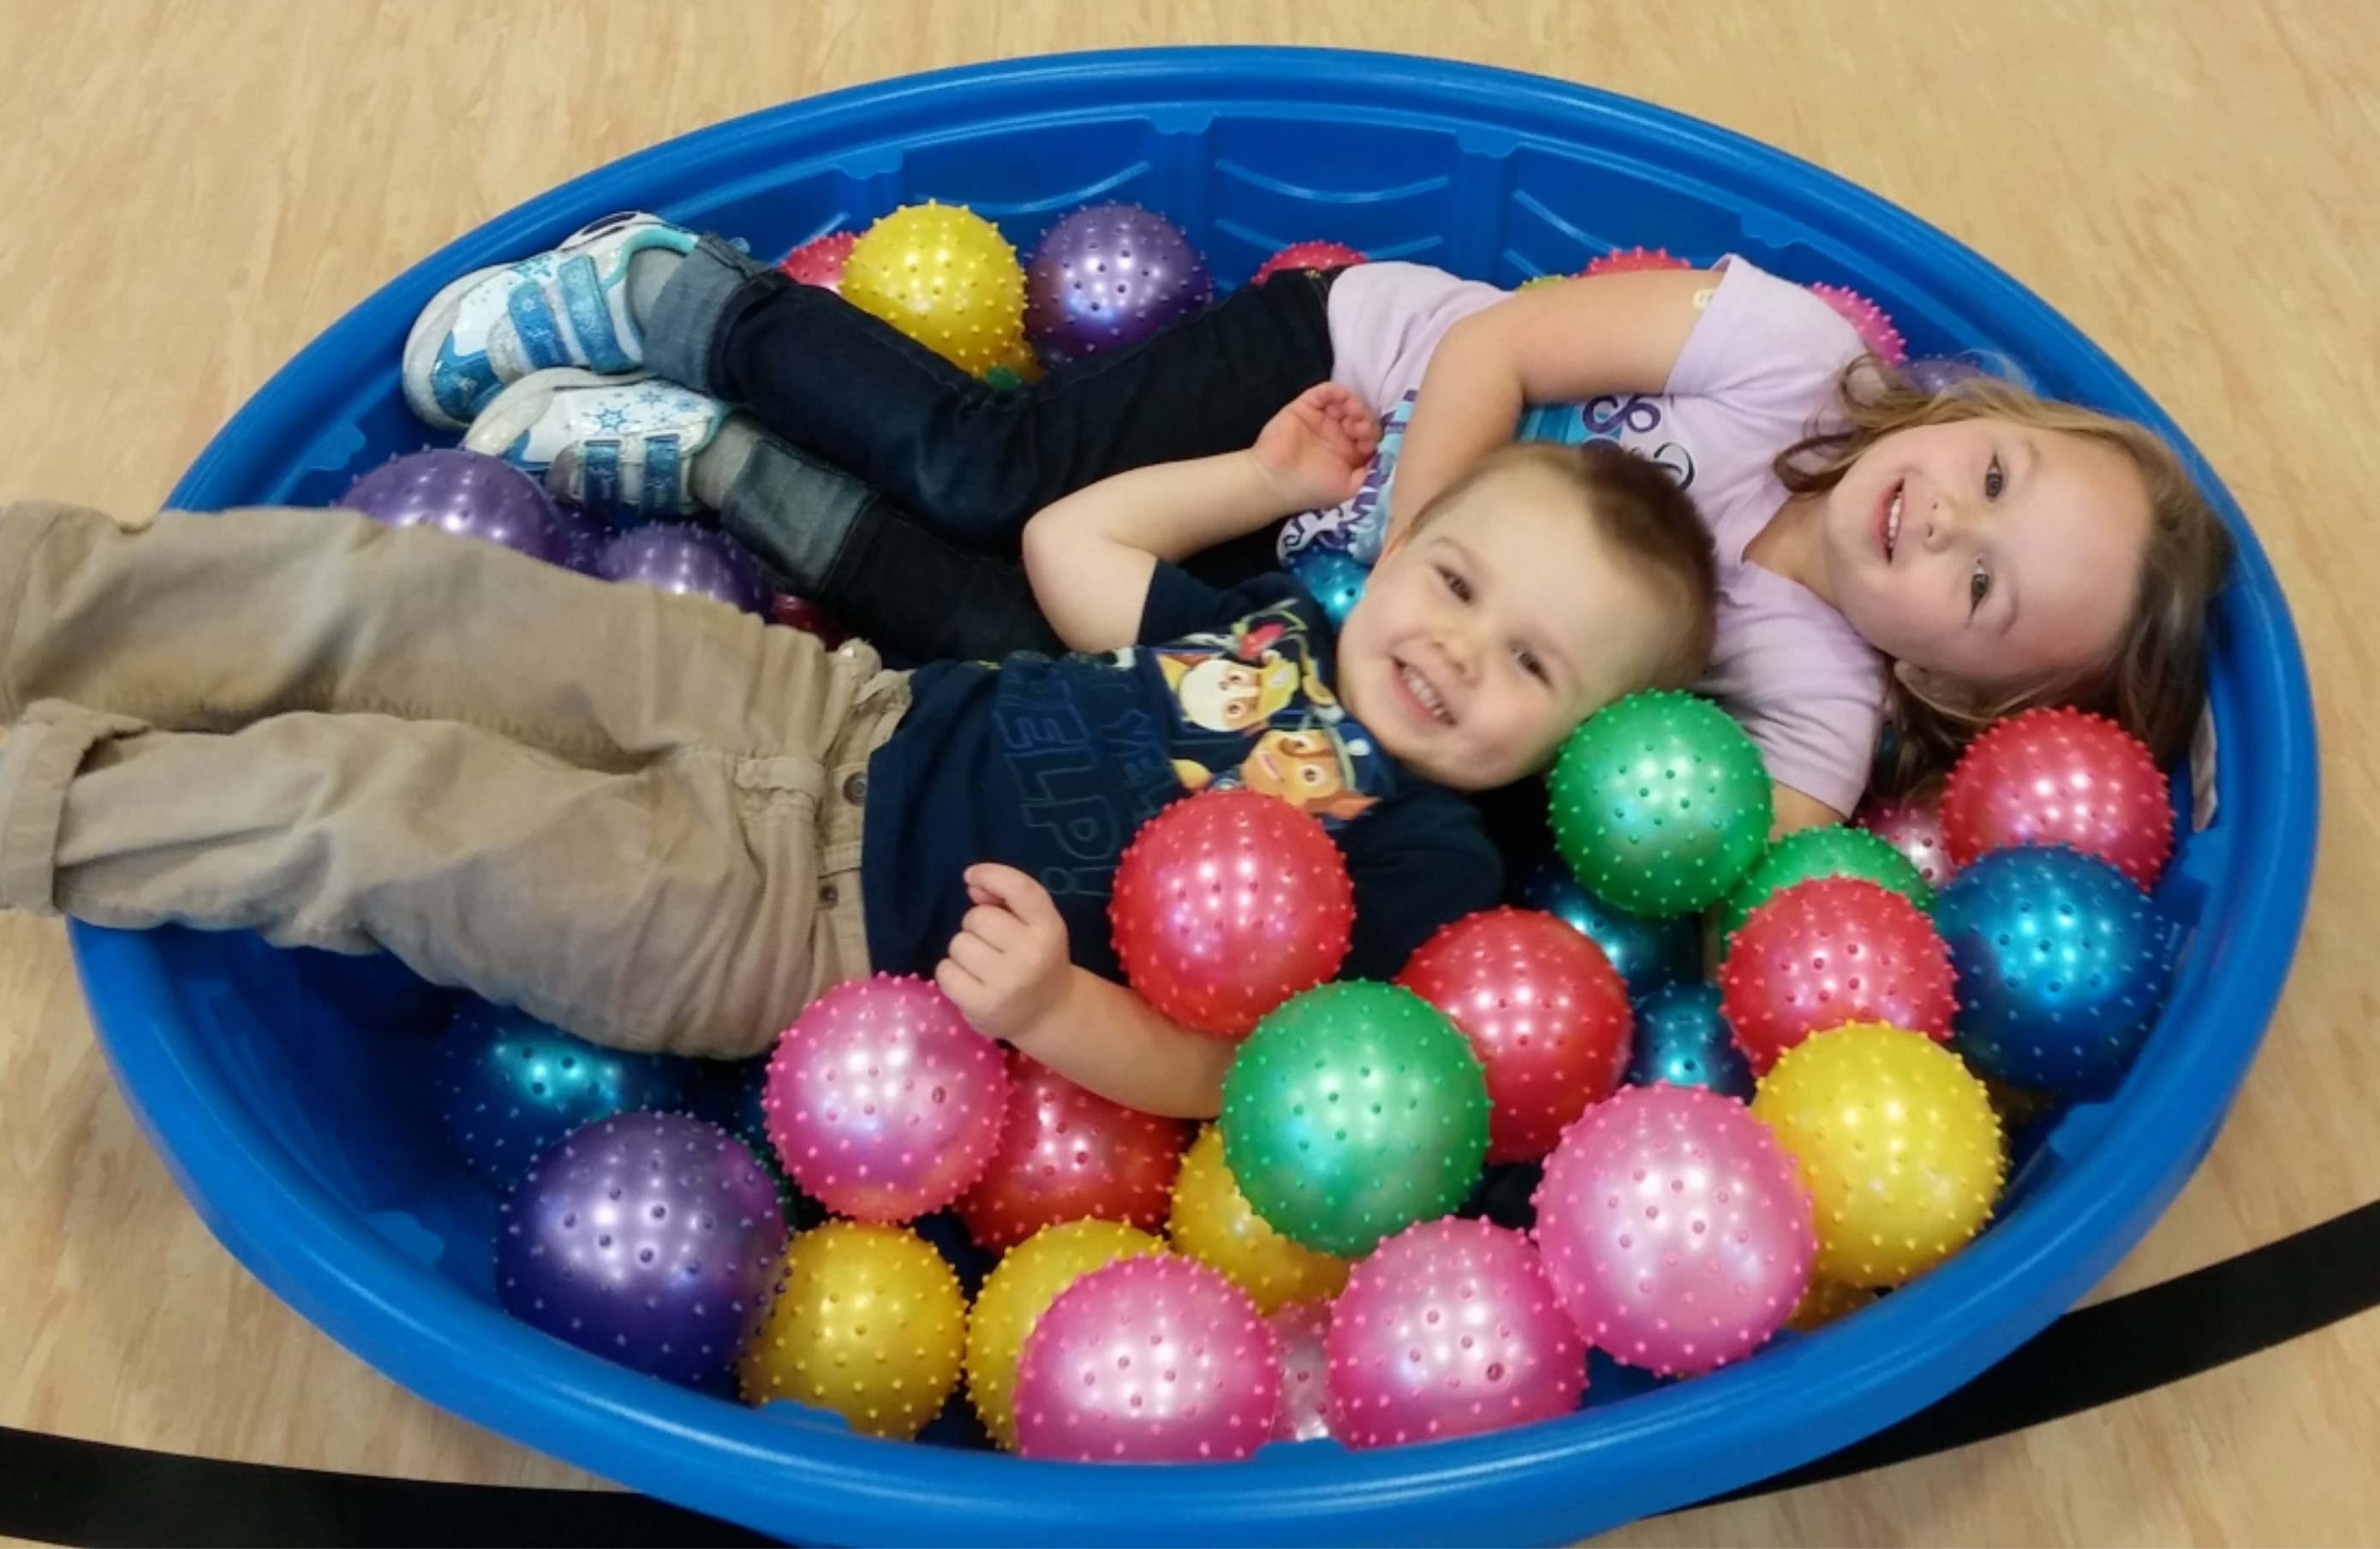 Two Kids Playing in a Pool Full of Plastic Toy Balls